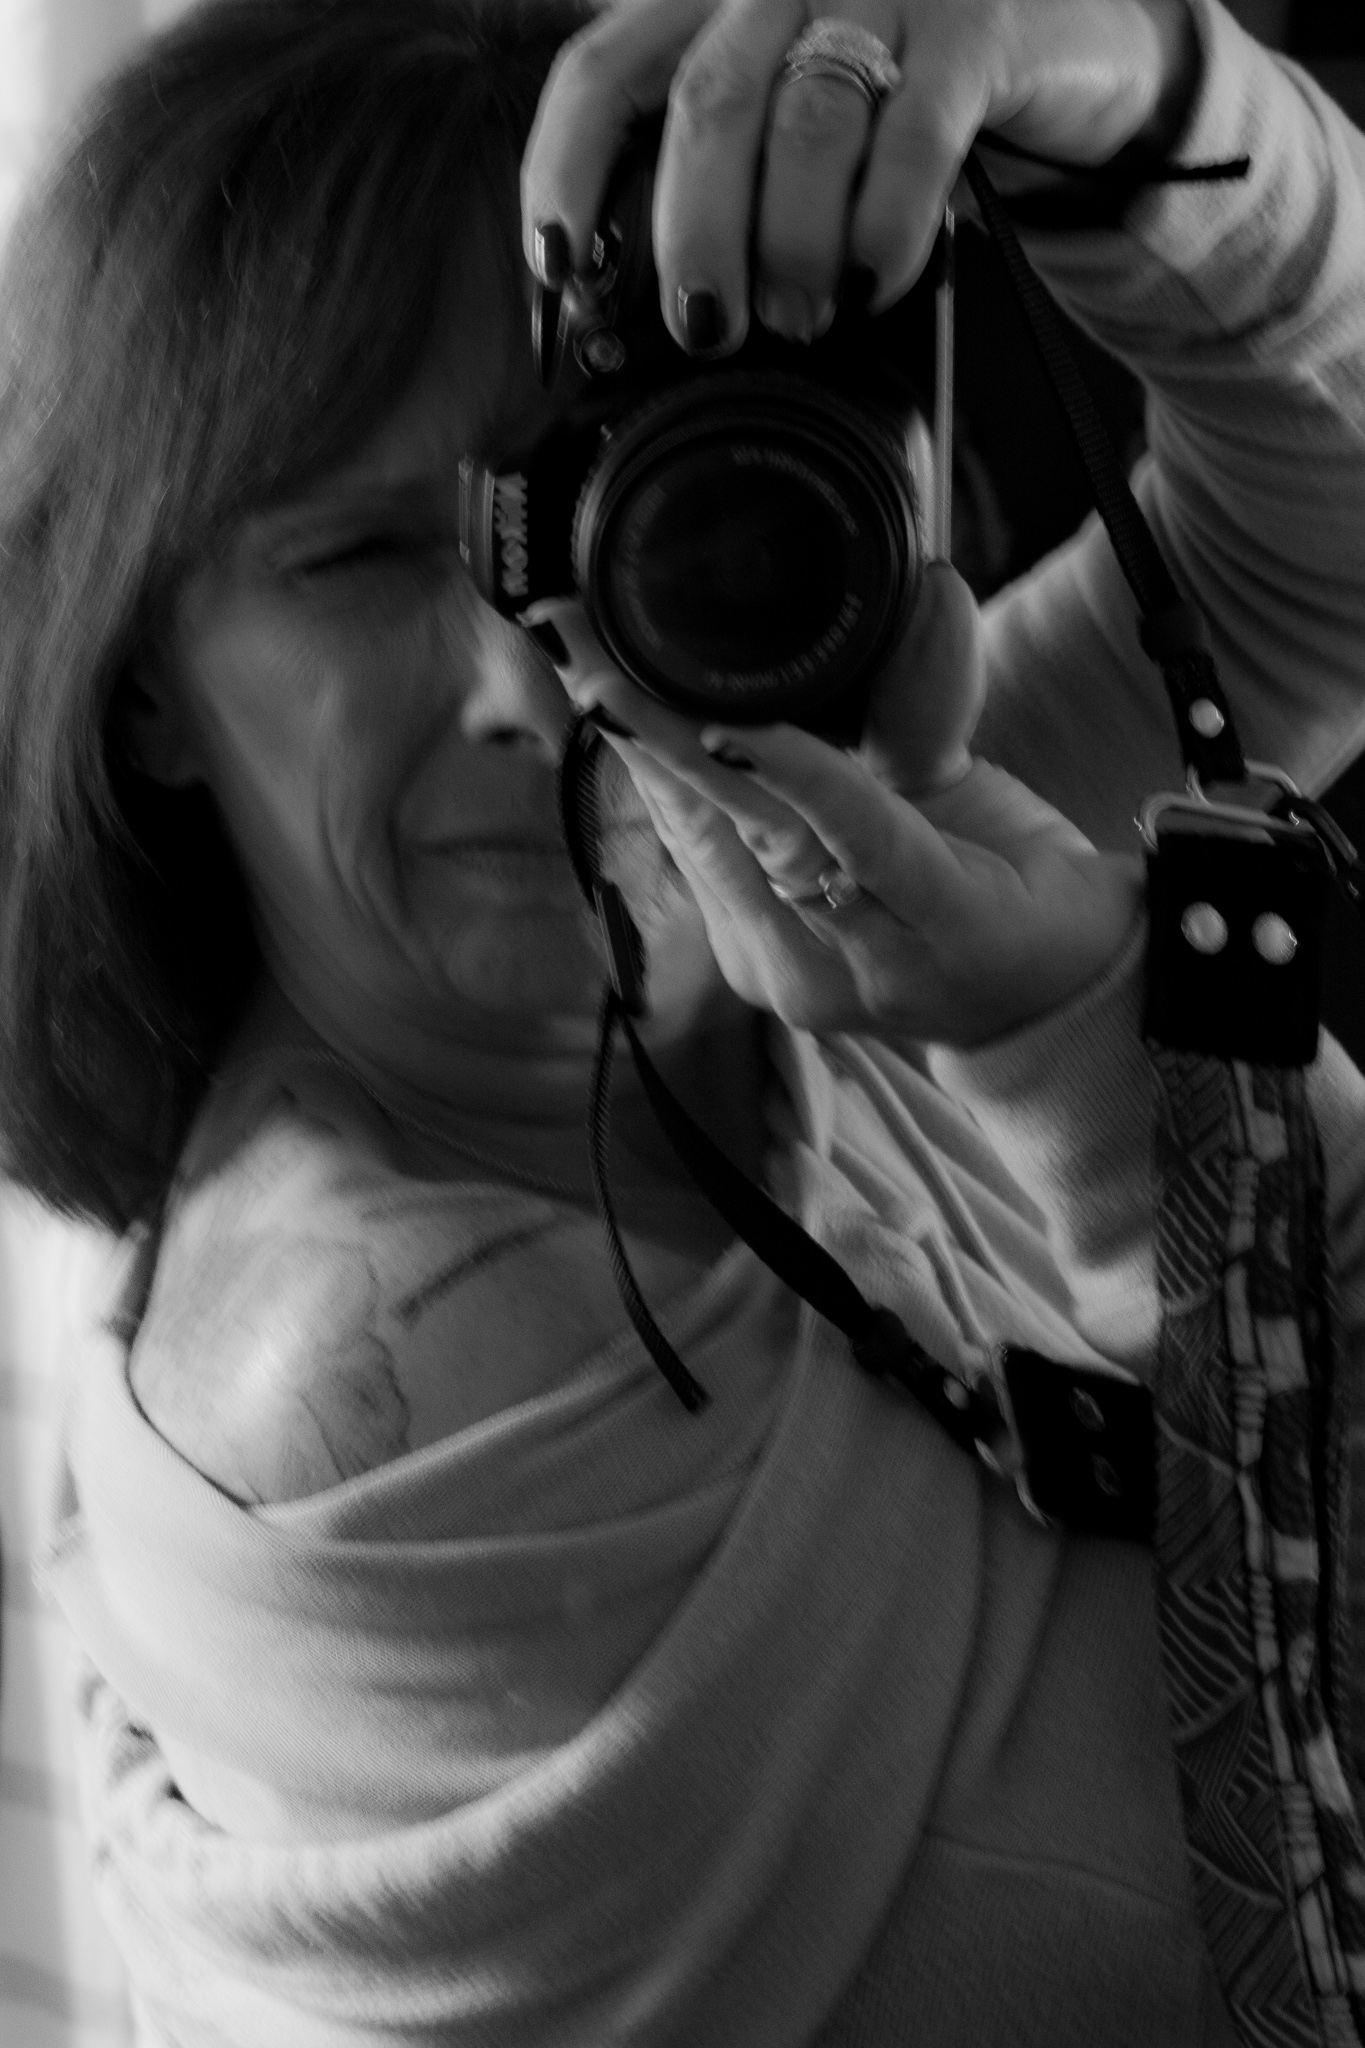 About Photographer Robin Enright Salcido | RES Photography